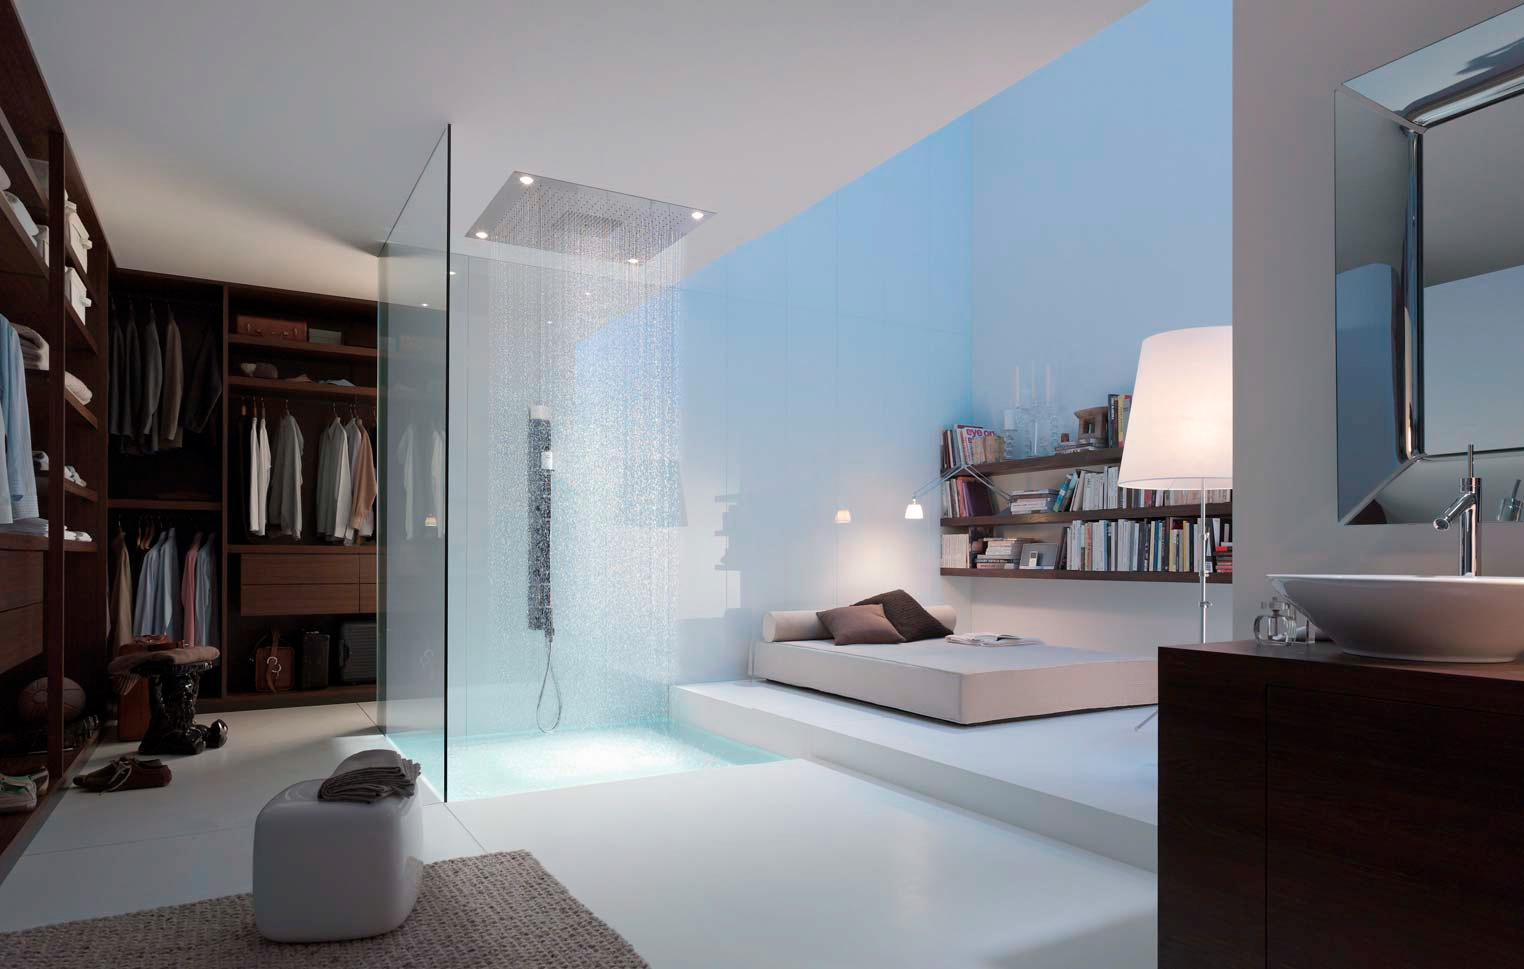 The top ideas and designs to enhance any ensuite bathroom qnud - Ensuite Bathroom